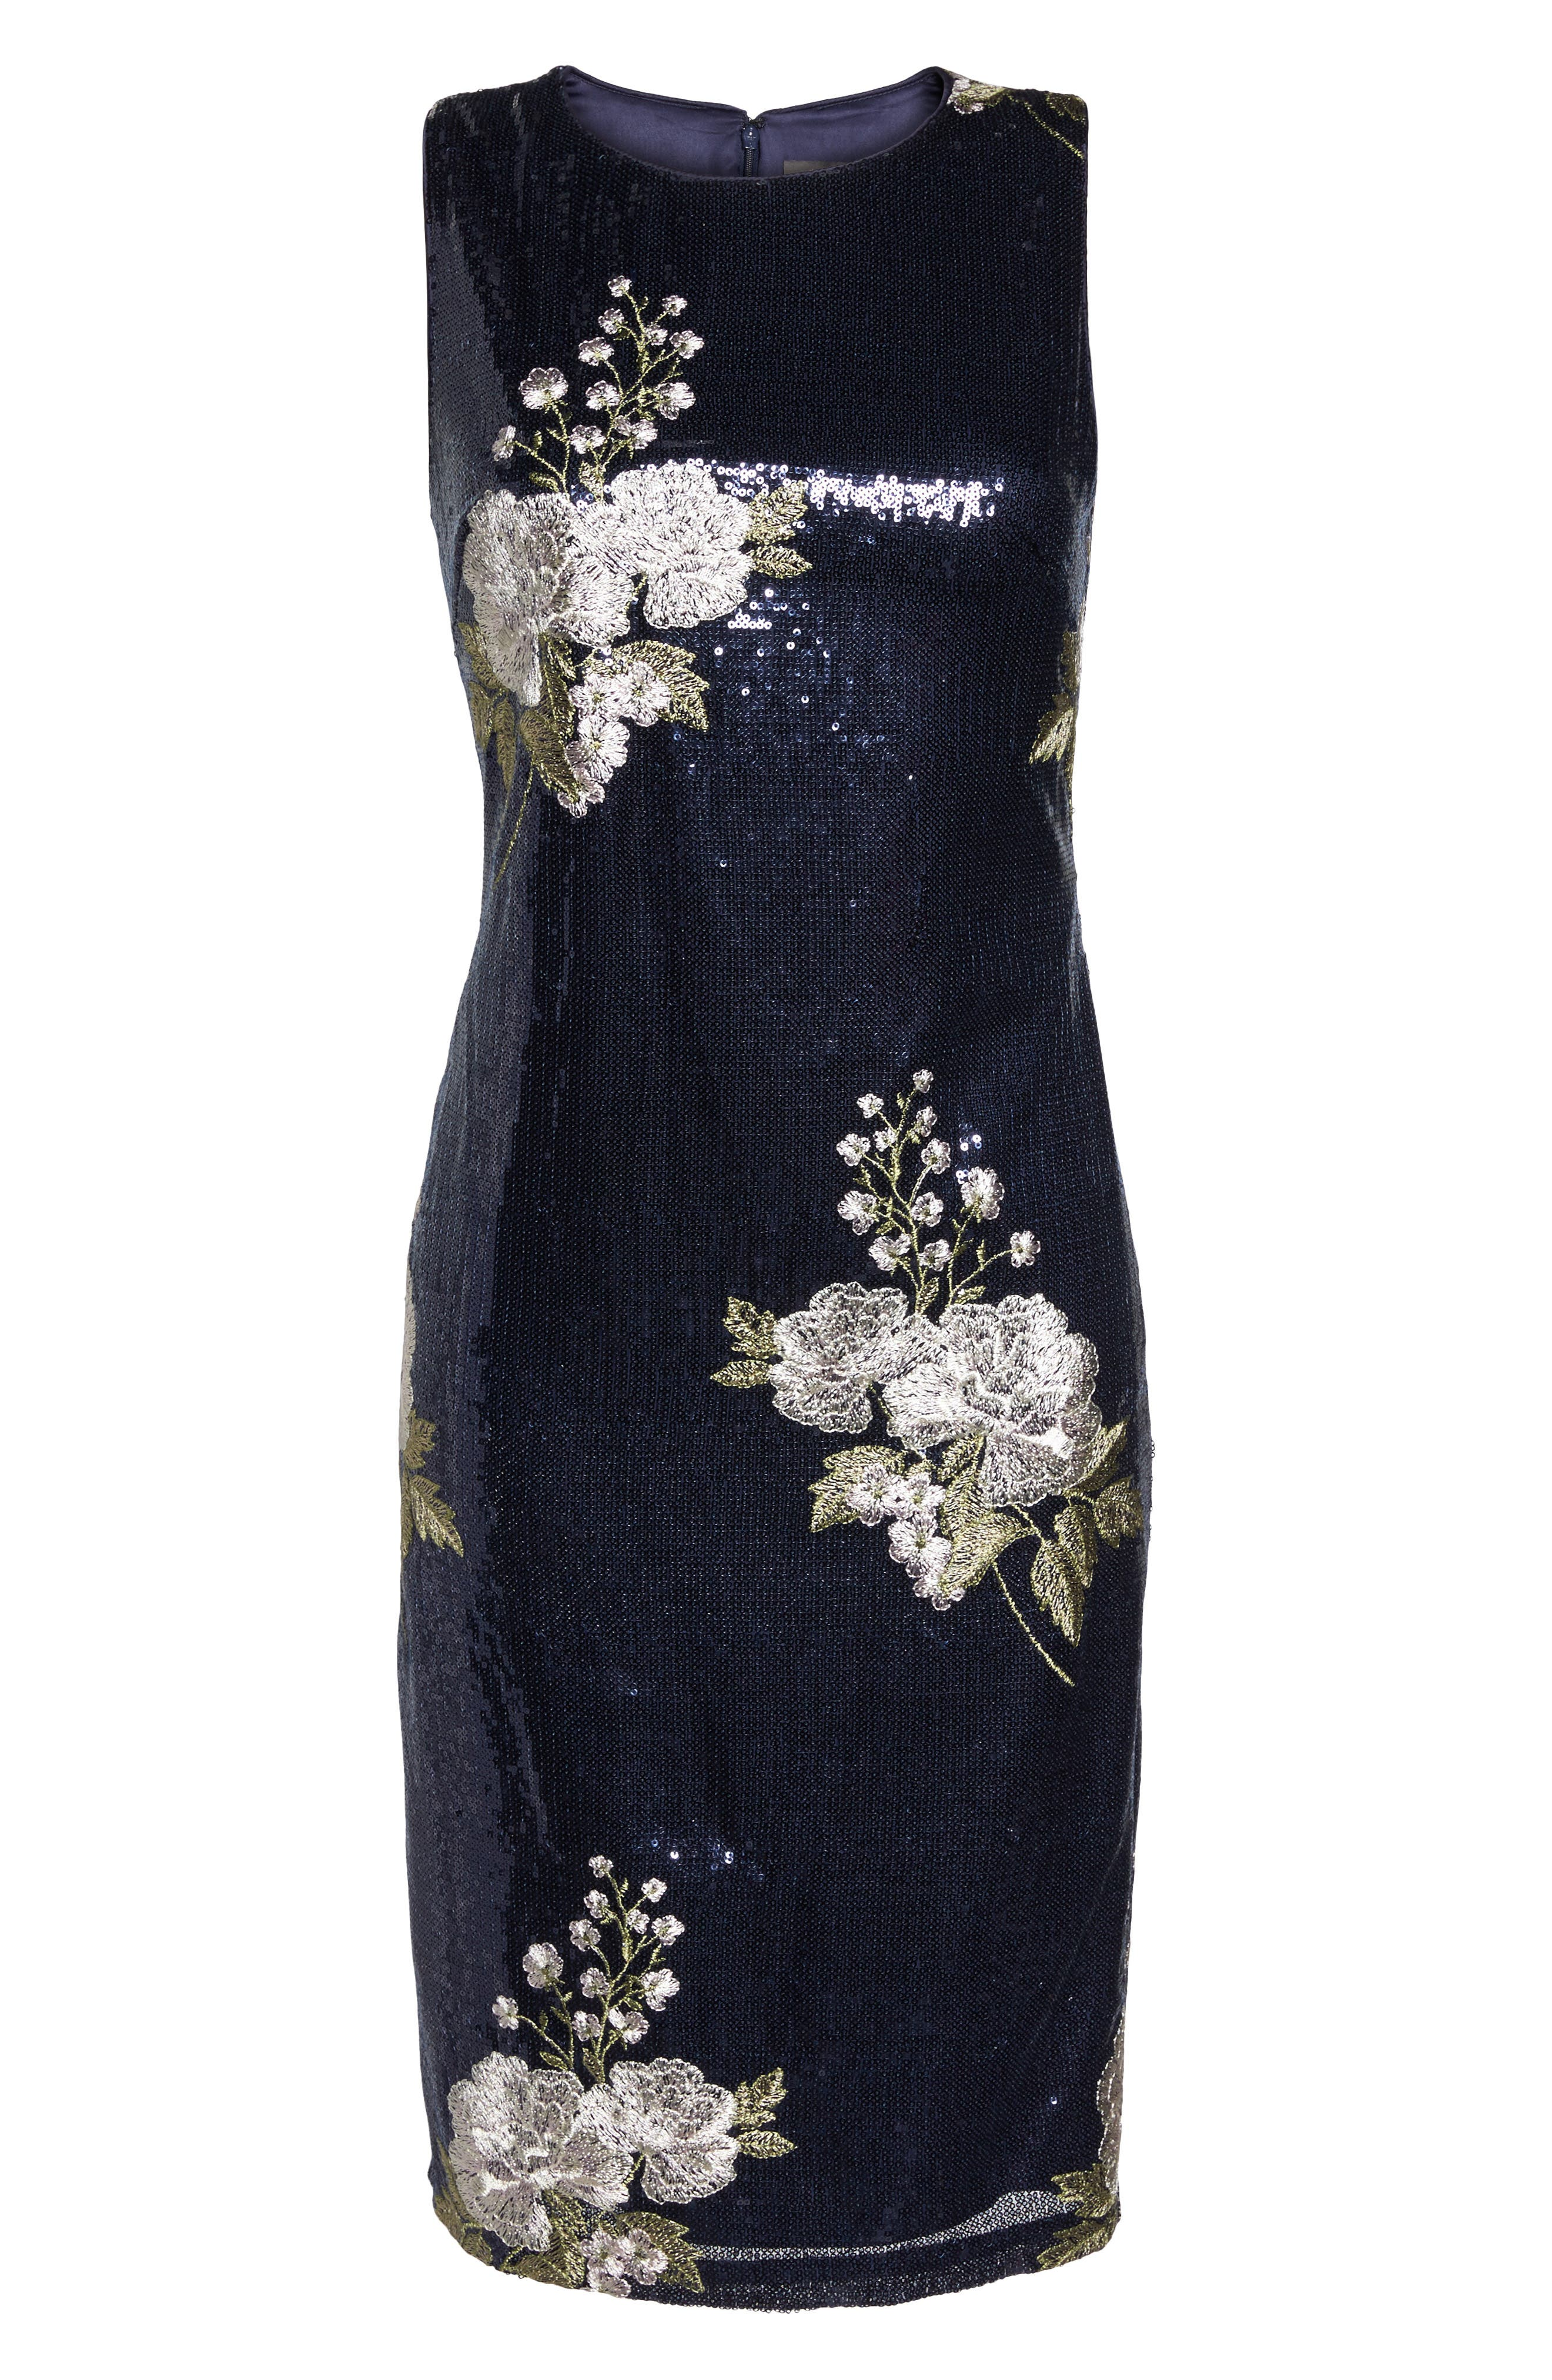 Sequin & Embroidery Sheath Dress,                             Alternate thumbnail 7, color,                             413